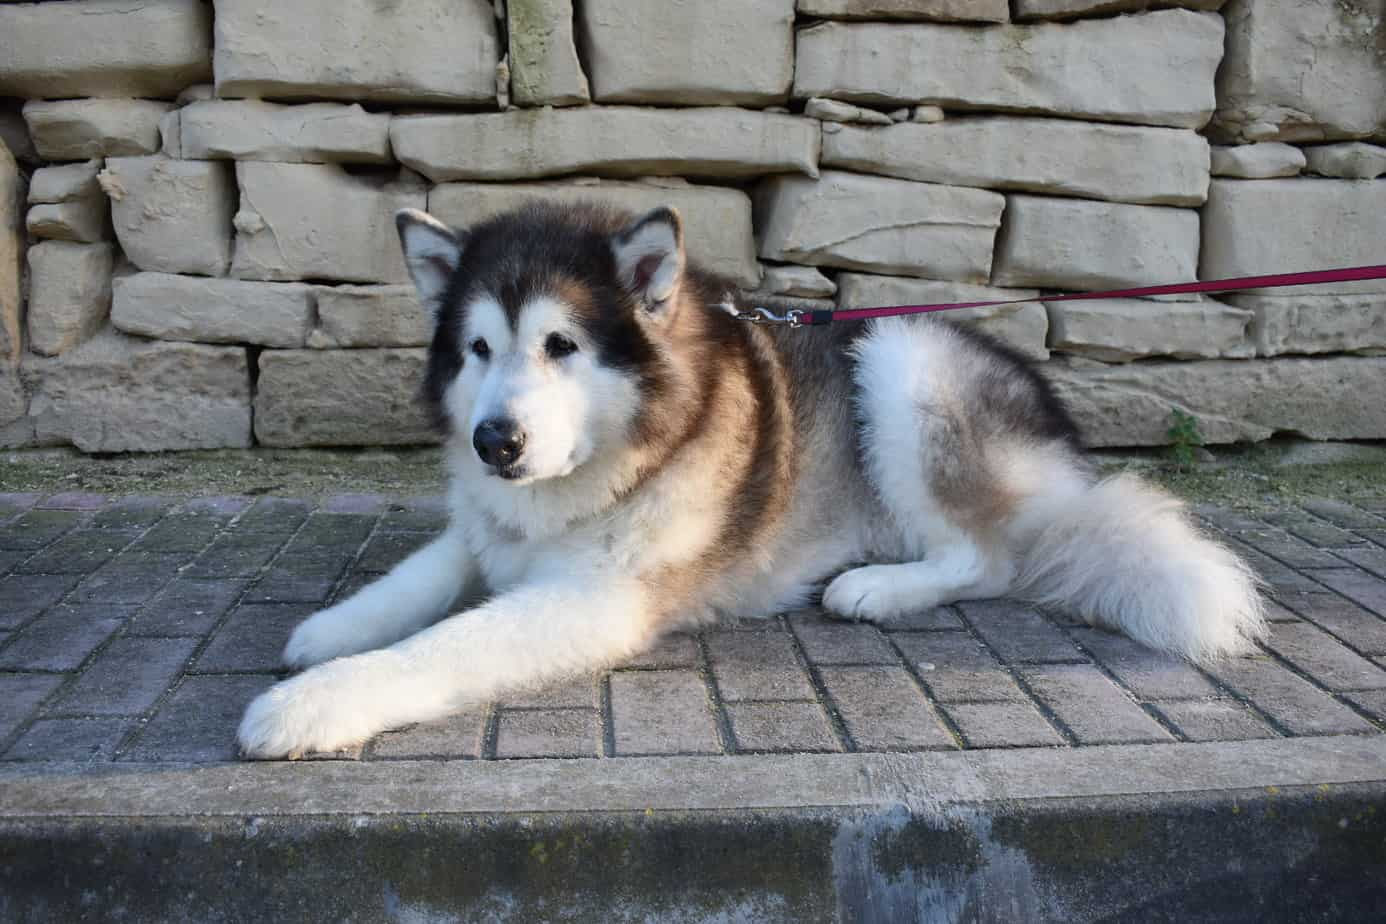 Large dogs with a long life expectancy